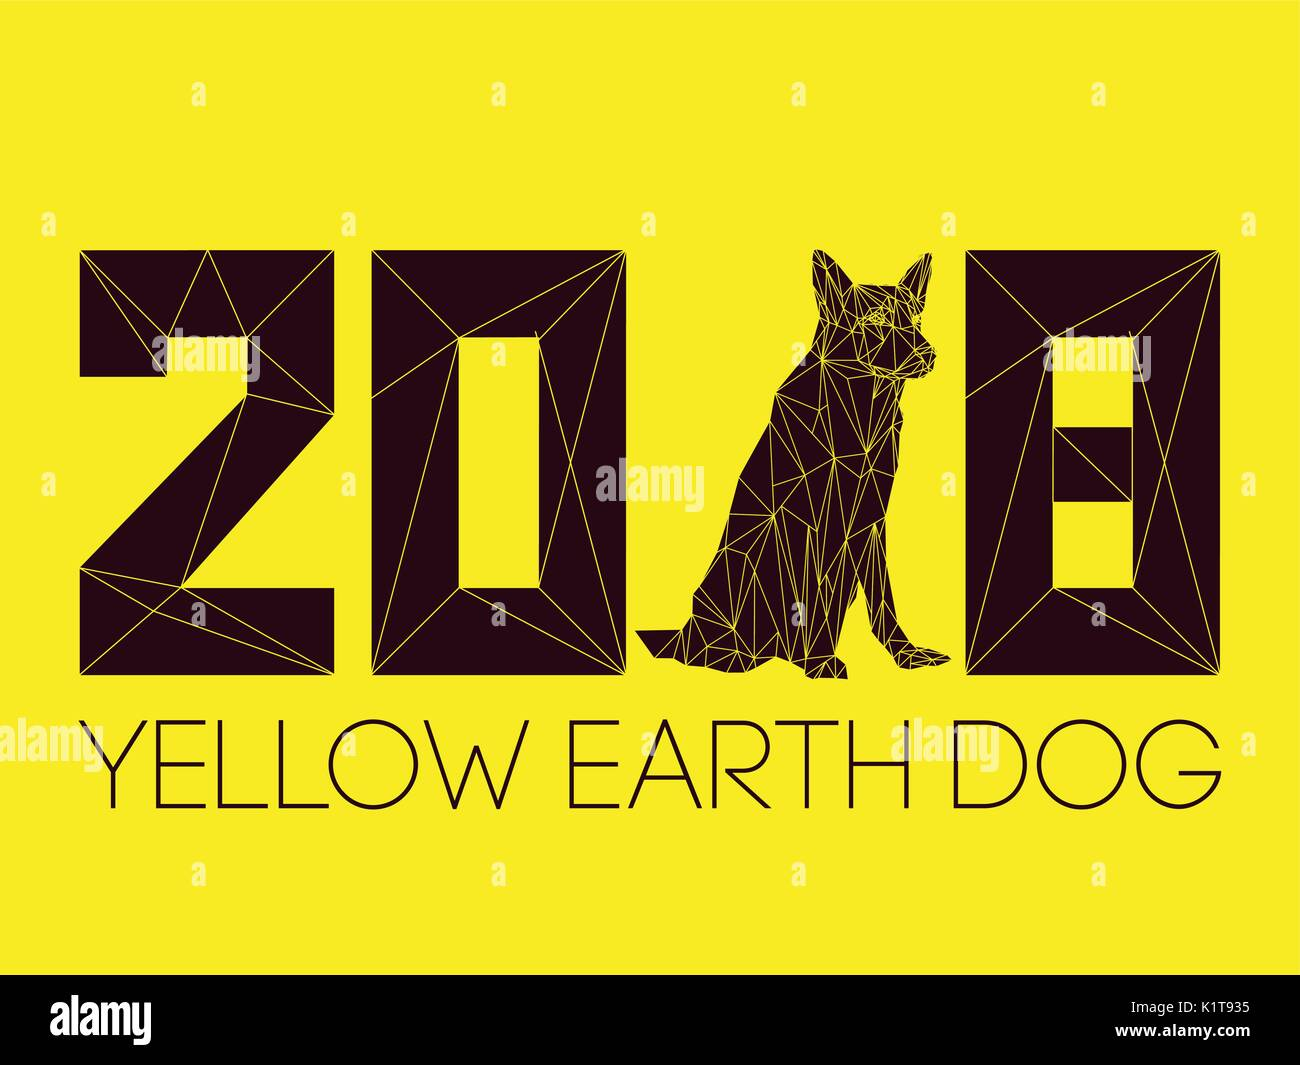 2018 and dog is symbol of new year according to chinese calendar 2018 and dog is symbol of new year according to chinese calendar year of yellow earth dog guard dog german shepherd in polygons style sitting biocorpaavc